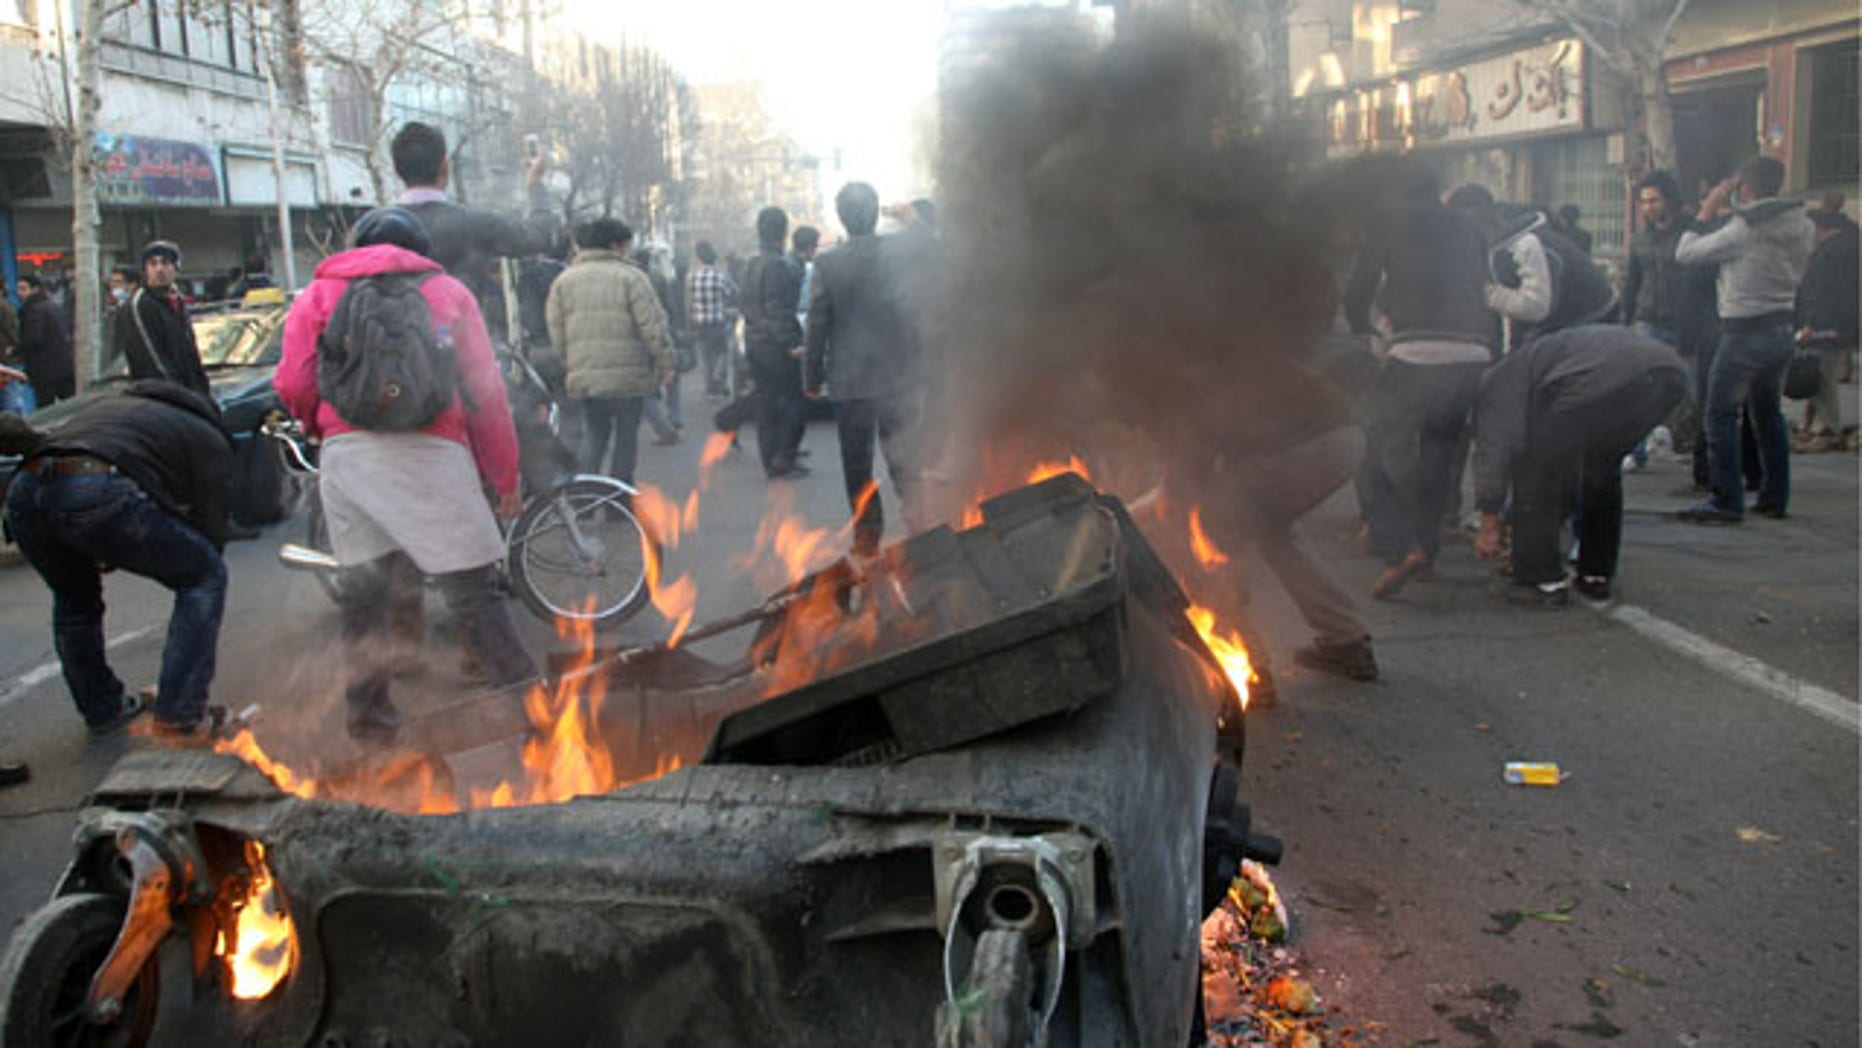 Feb. 14, 2011: This photo shows Iranian protestors attending an anti-government protest as a garbage can is set on fire, in Tehran, Iran.